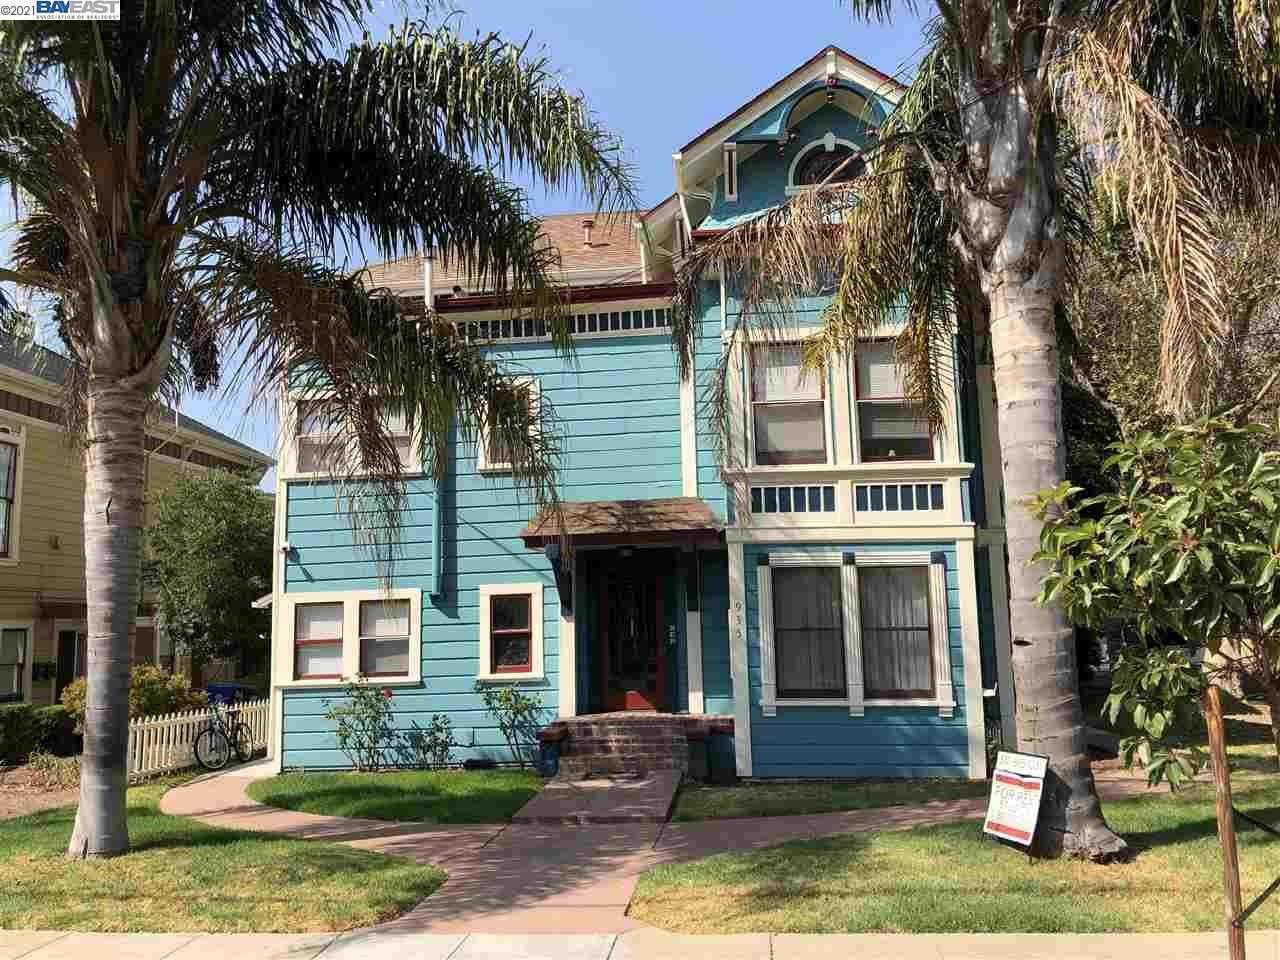 Multi-Family Homes for Sale at 935 Santa Clara Avenue Alameda, California 94501 United States